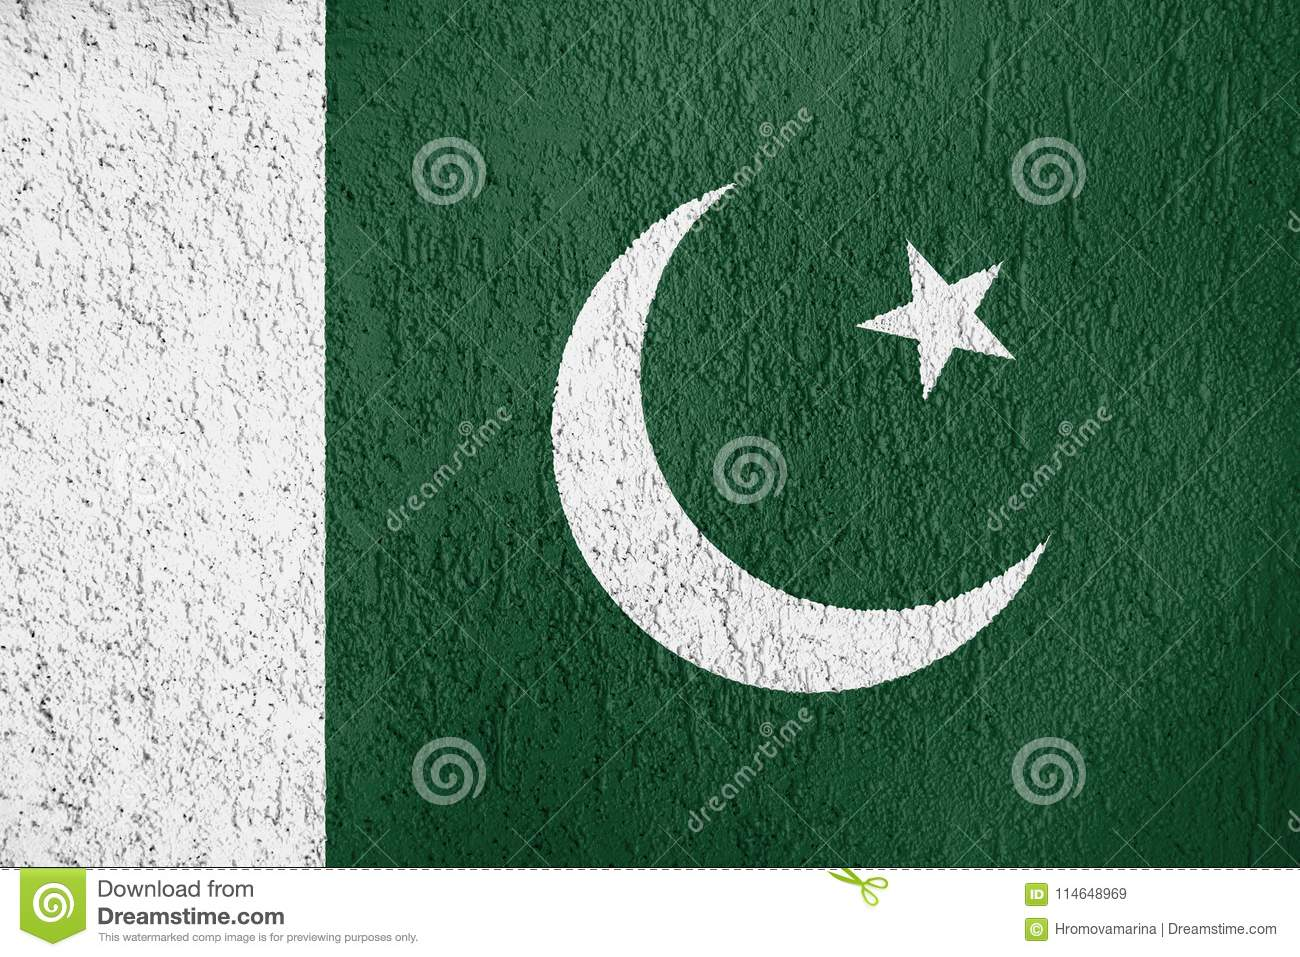 Texture of Pakistan flag.